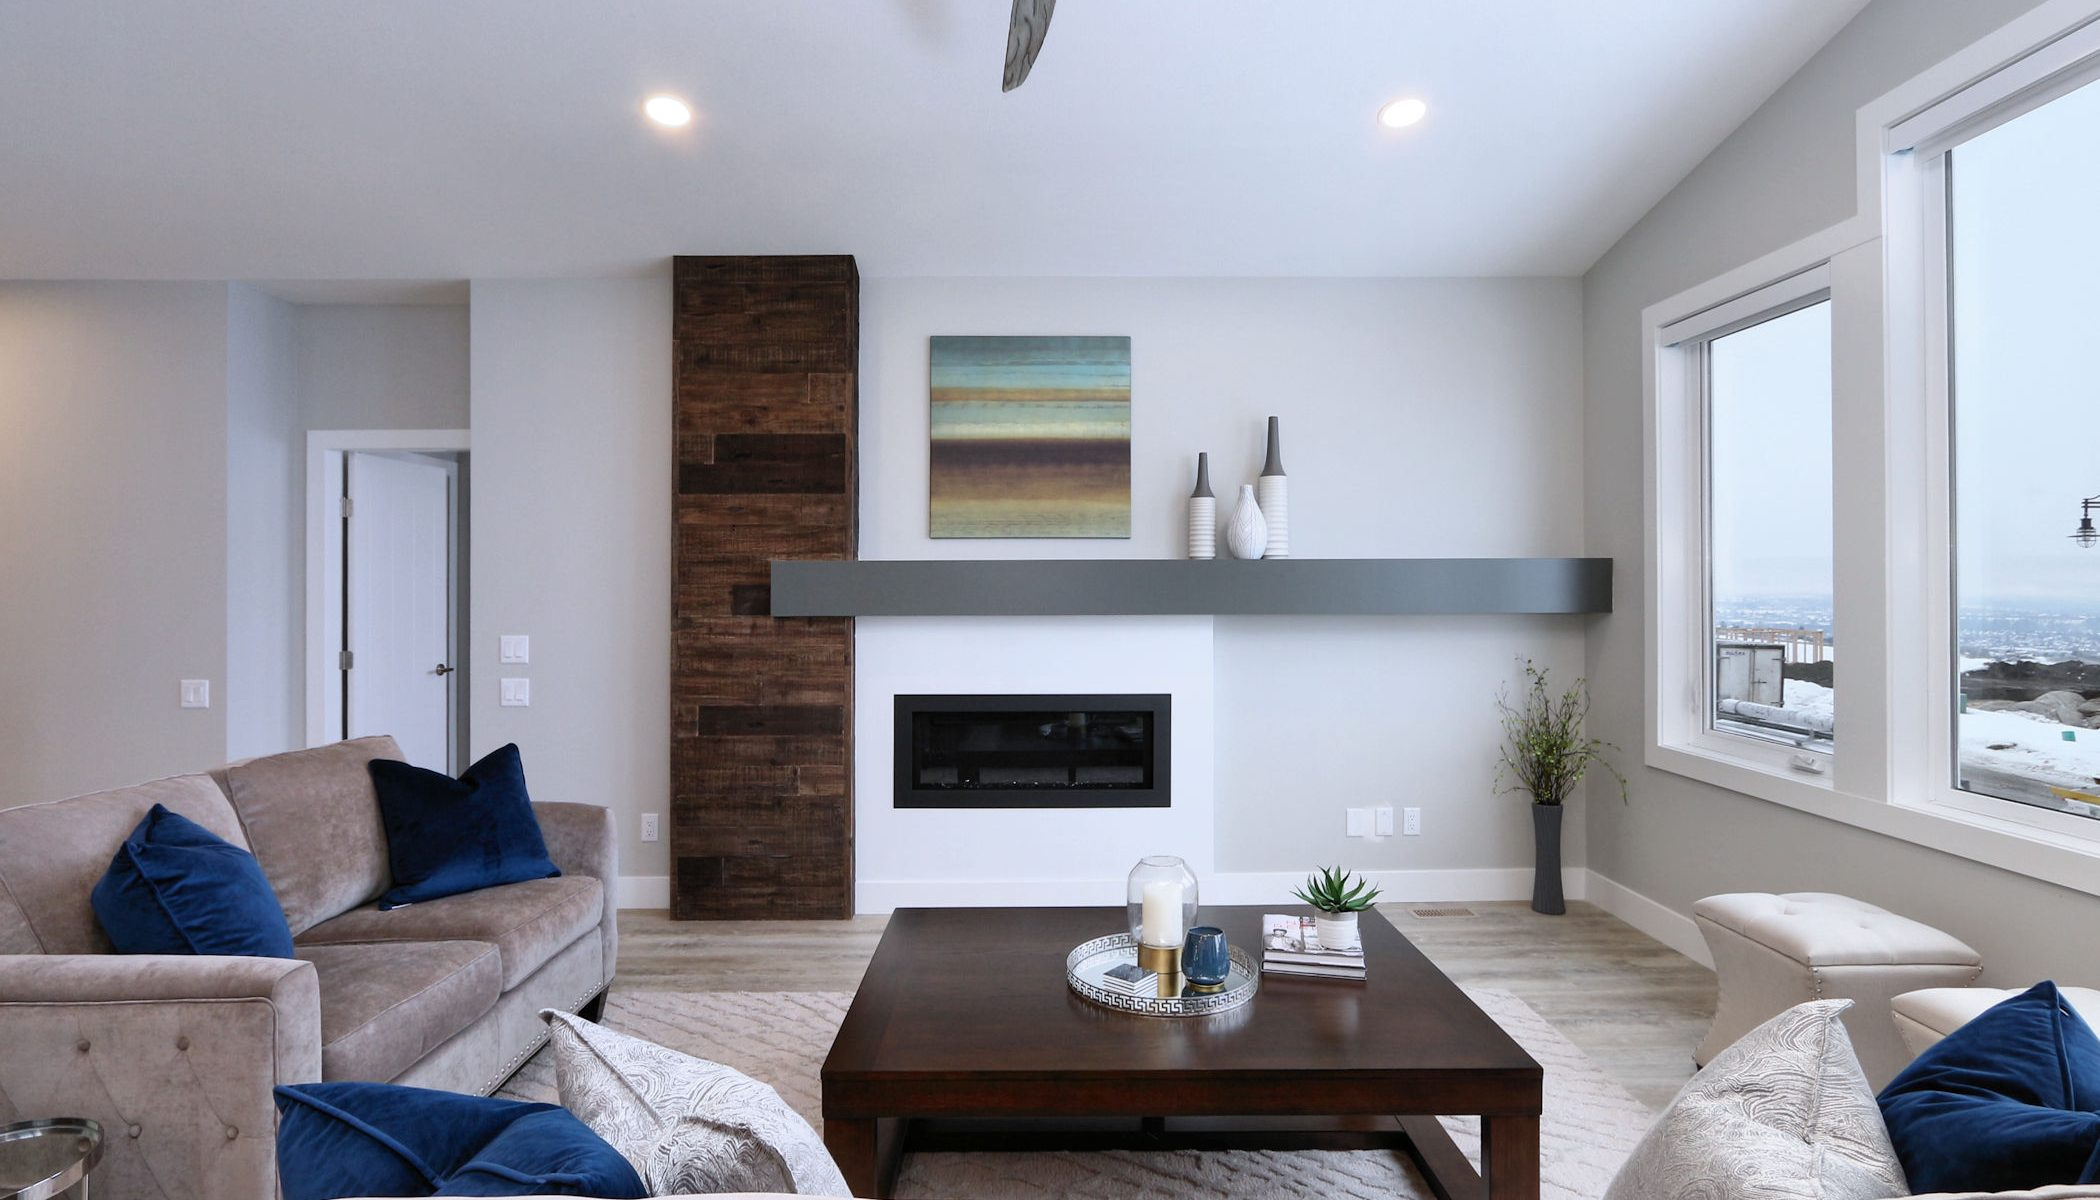 Kitchen & Living Room Preview